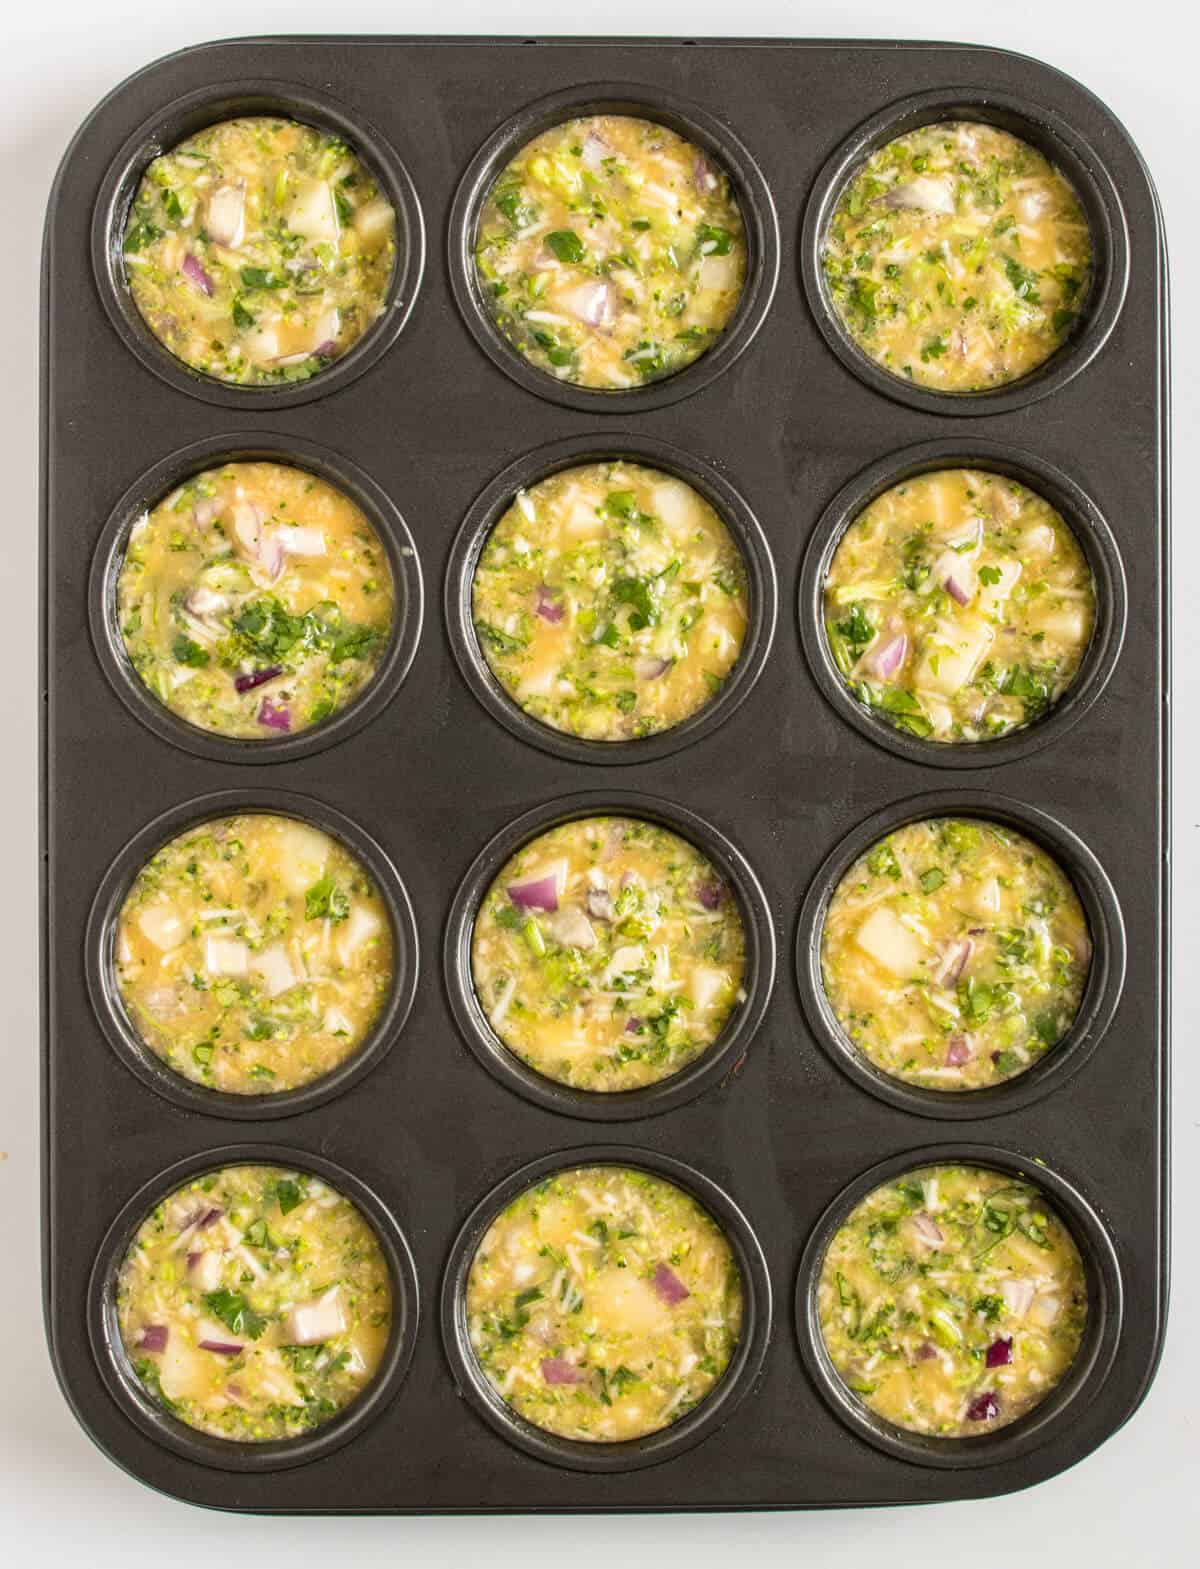 Egg mixture in a muffin tray before going into the oven